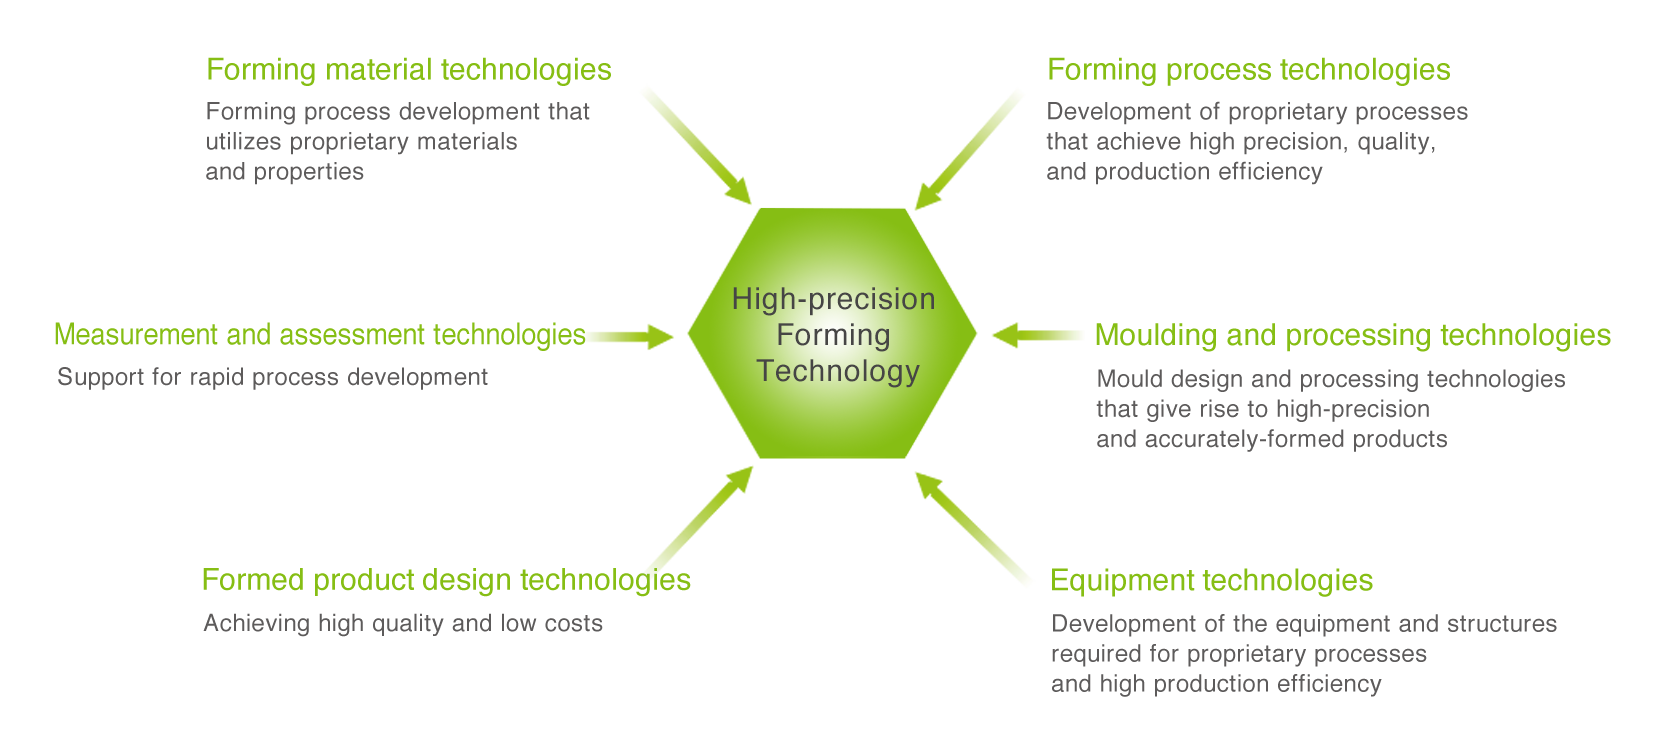 [image] The 6 Technologies That Support High-Precision Forming